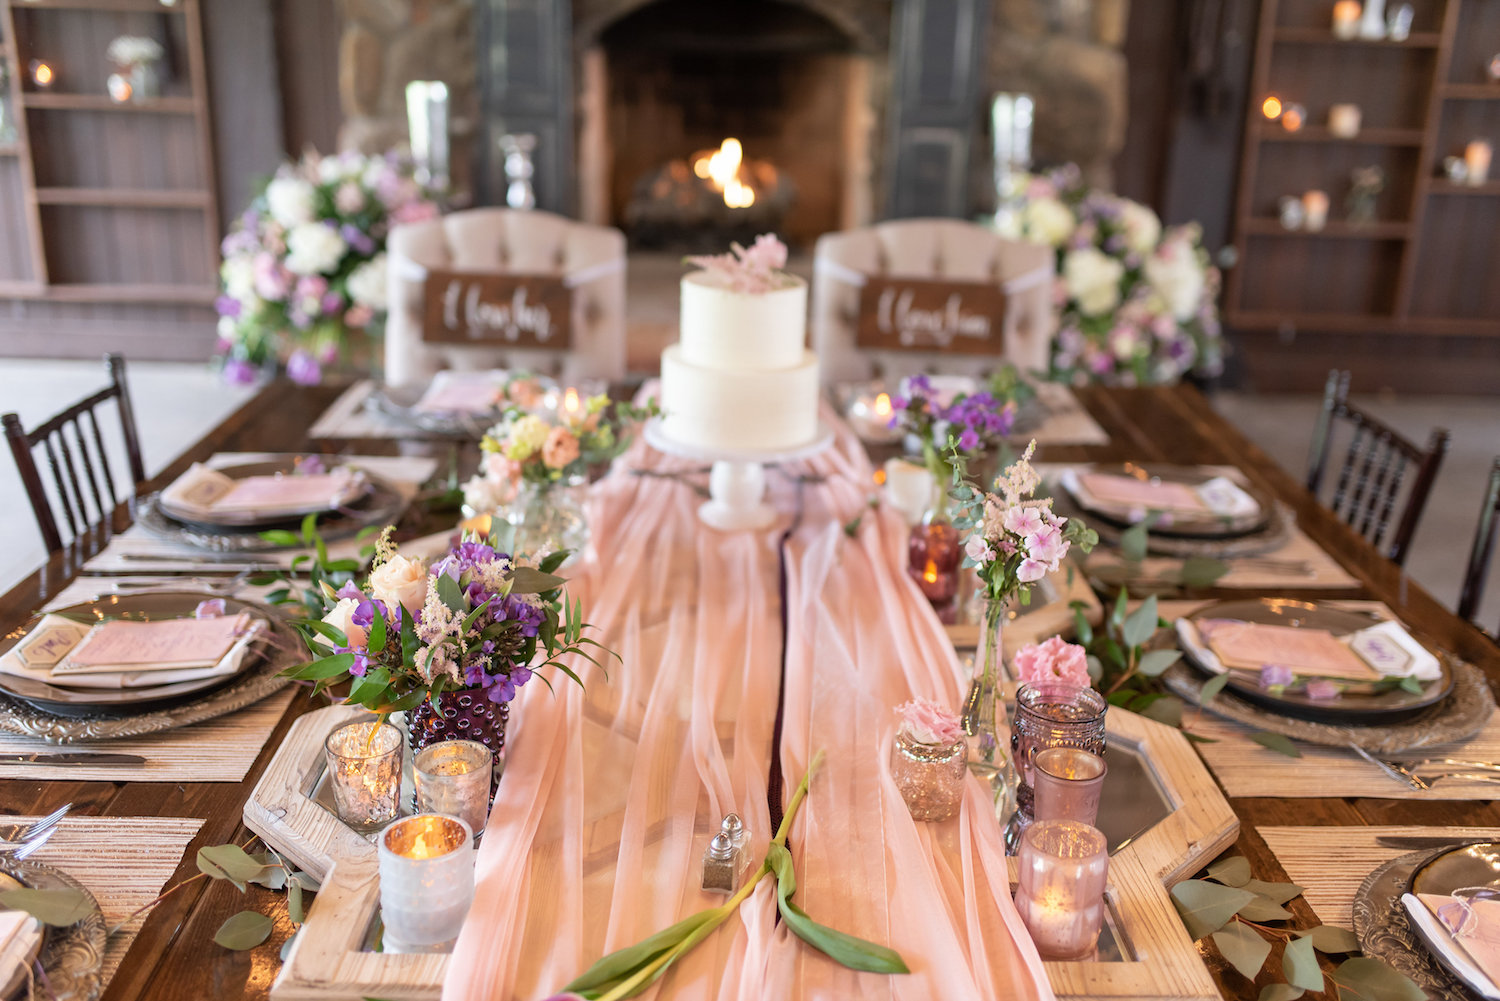 Sarah and Mark | Hope Glen Farm | Kelly Birch Photo | Sixpence Events & Planning wedding planning in Minnesota | pink table runner | two tiered white cake with pink astilbe on top